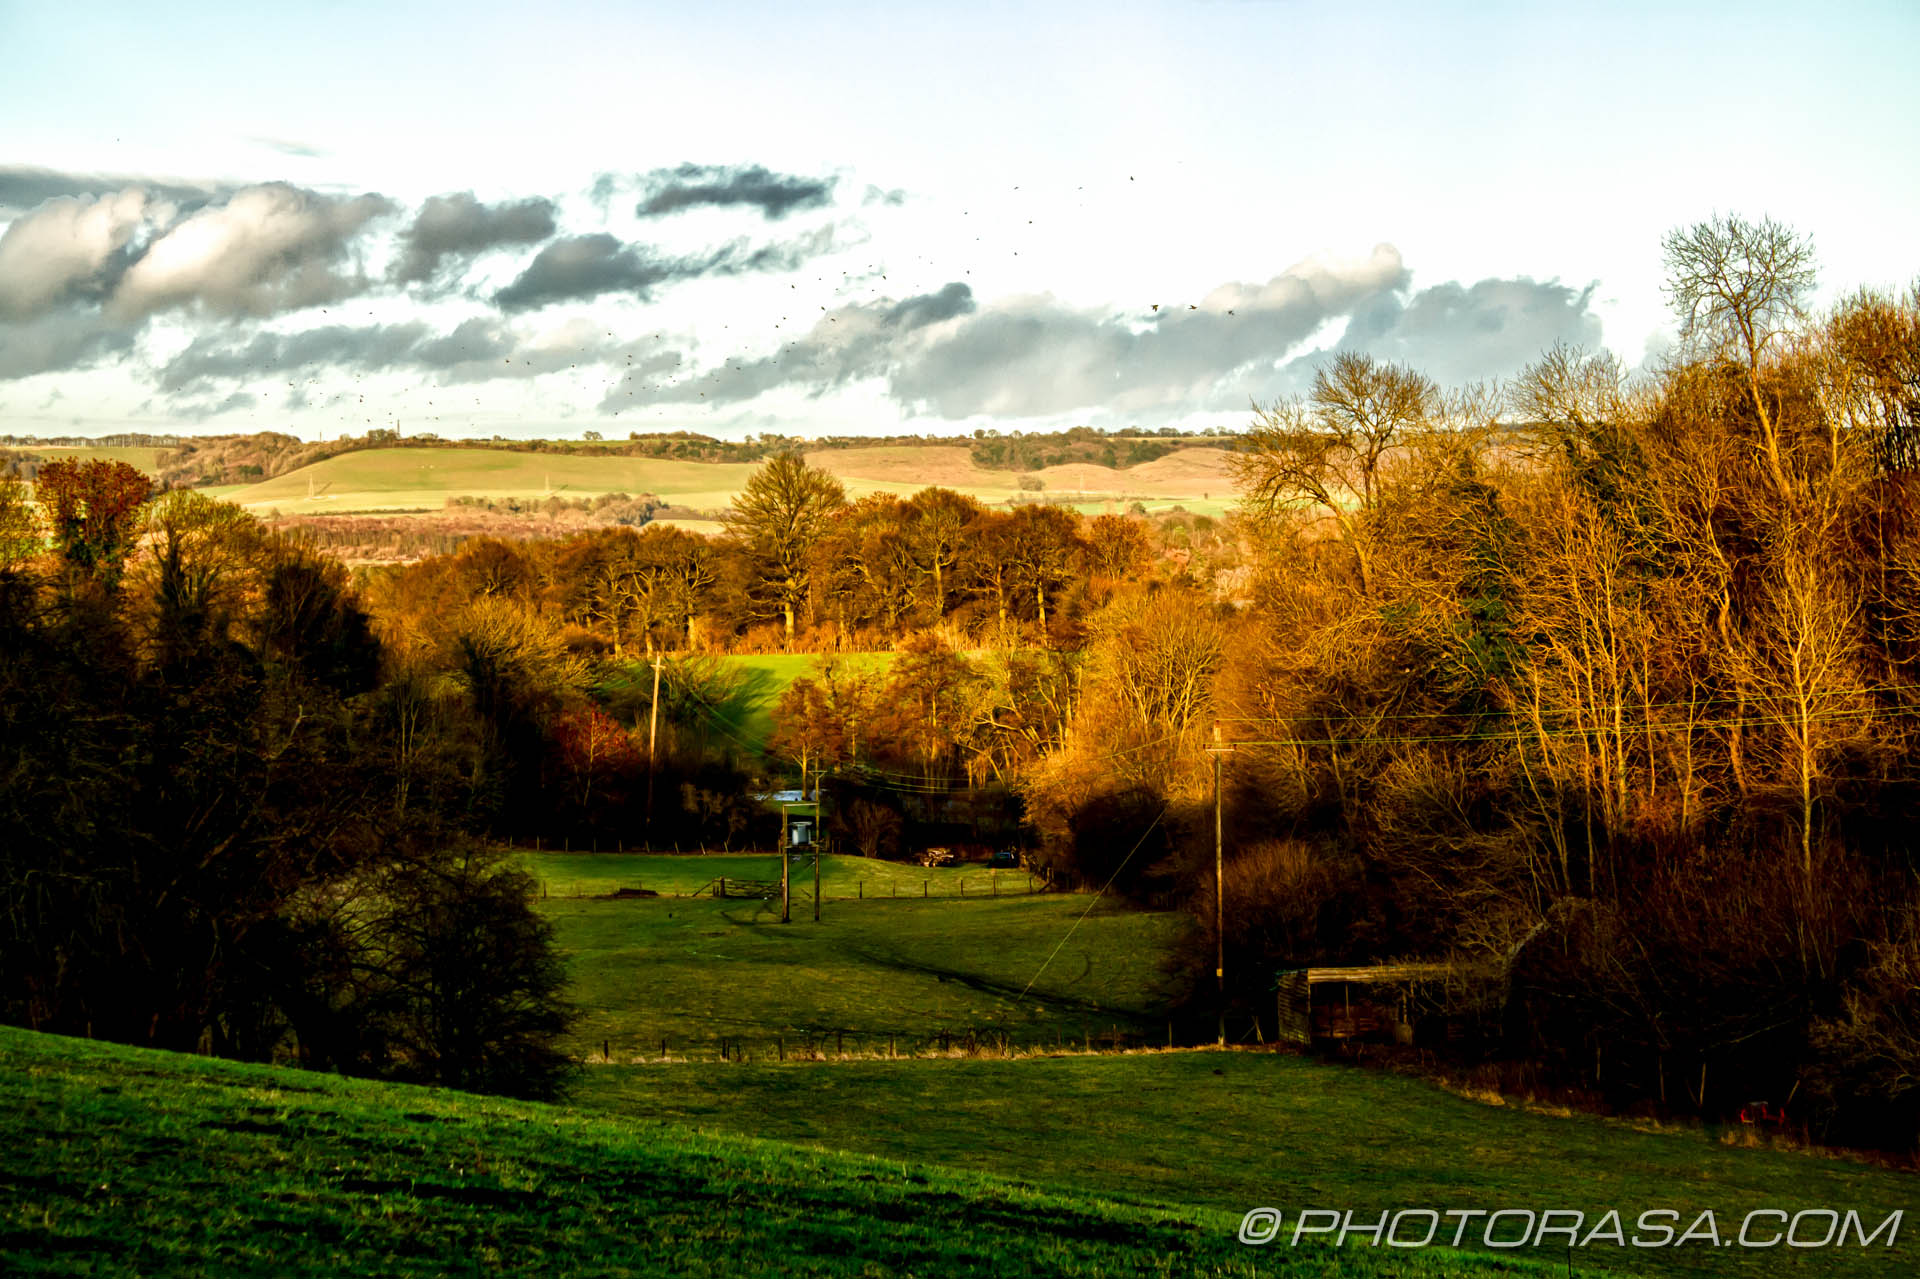 http://photorasa.com/countryside-otham/hdr-landscape-of-light-on-treetops-in-langley/